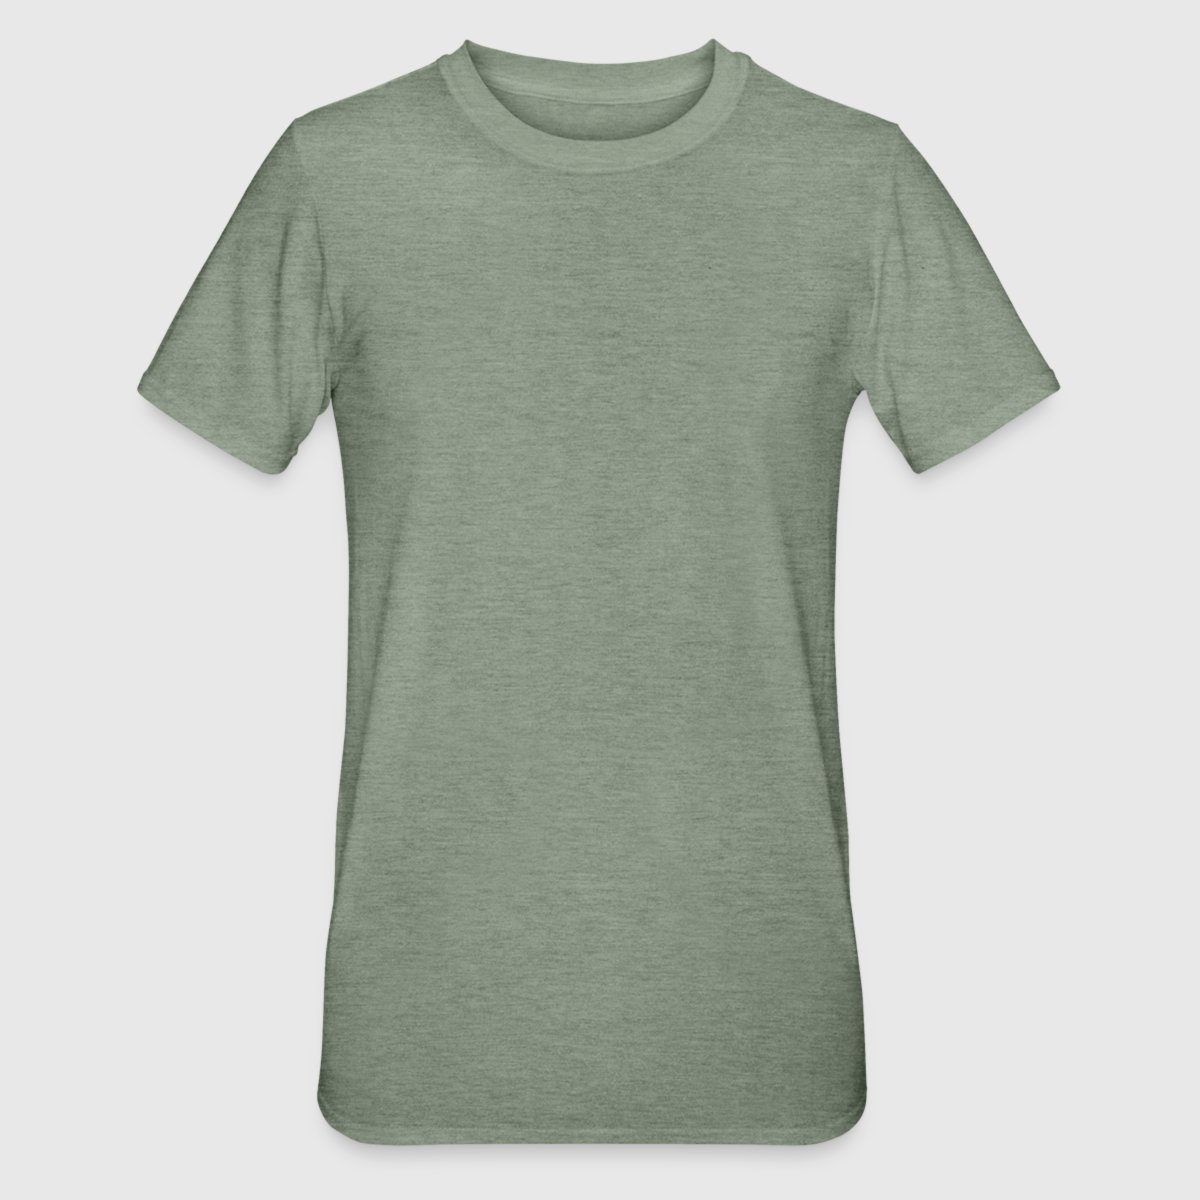 Men's T-shirt in heather colours - Front